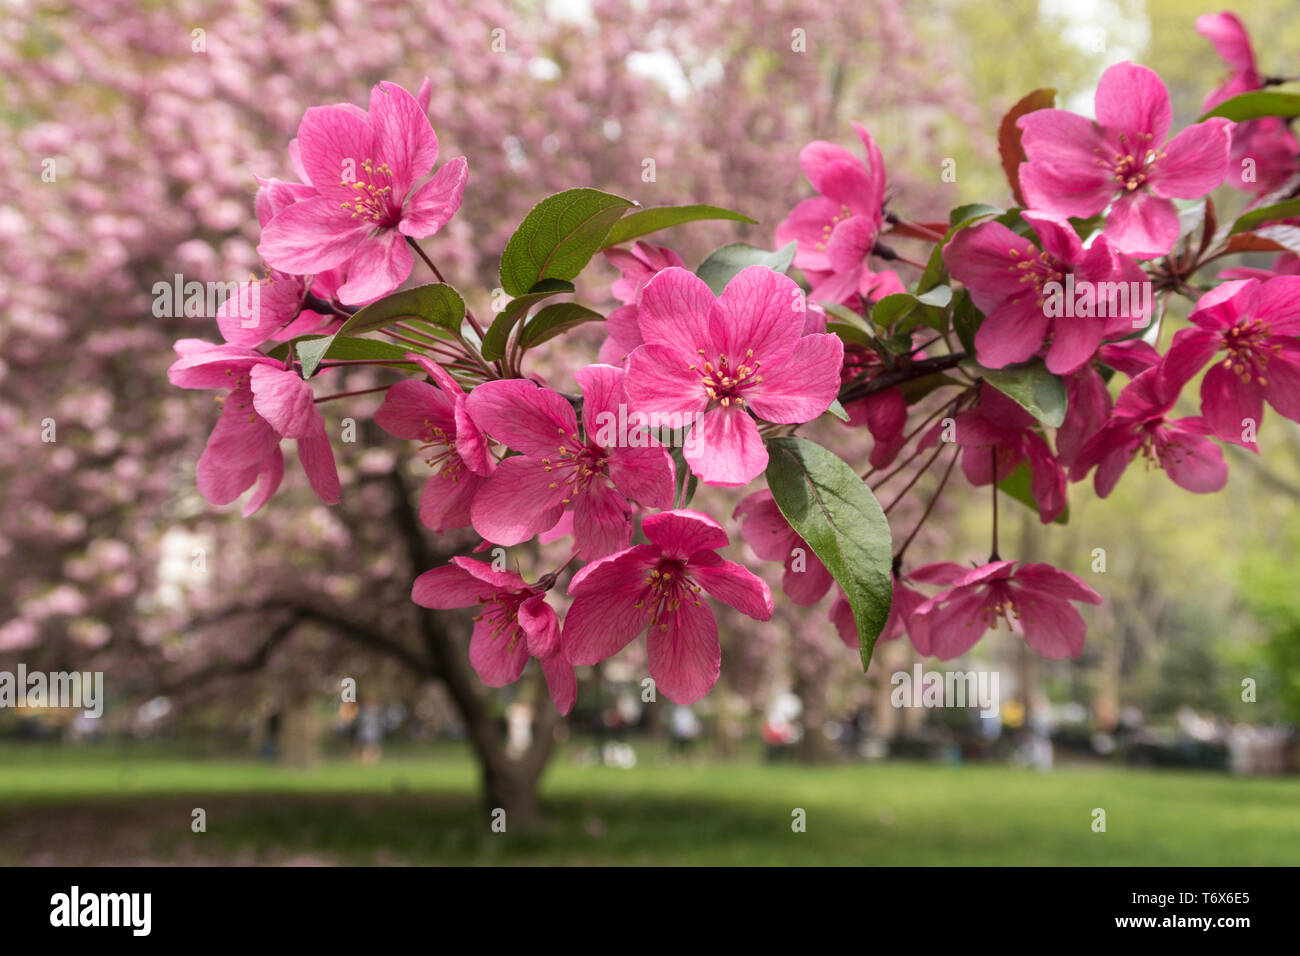 Prairie fire crab apple tree blossoms are beautiful in Madison Square Park, NYC, USA Stock Photo